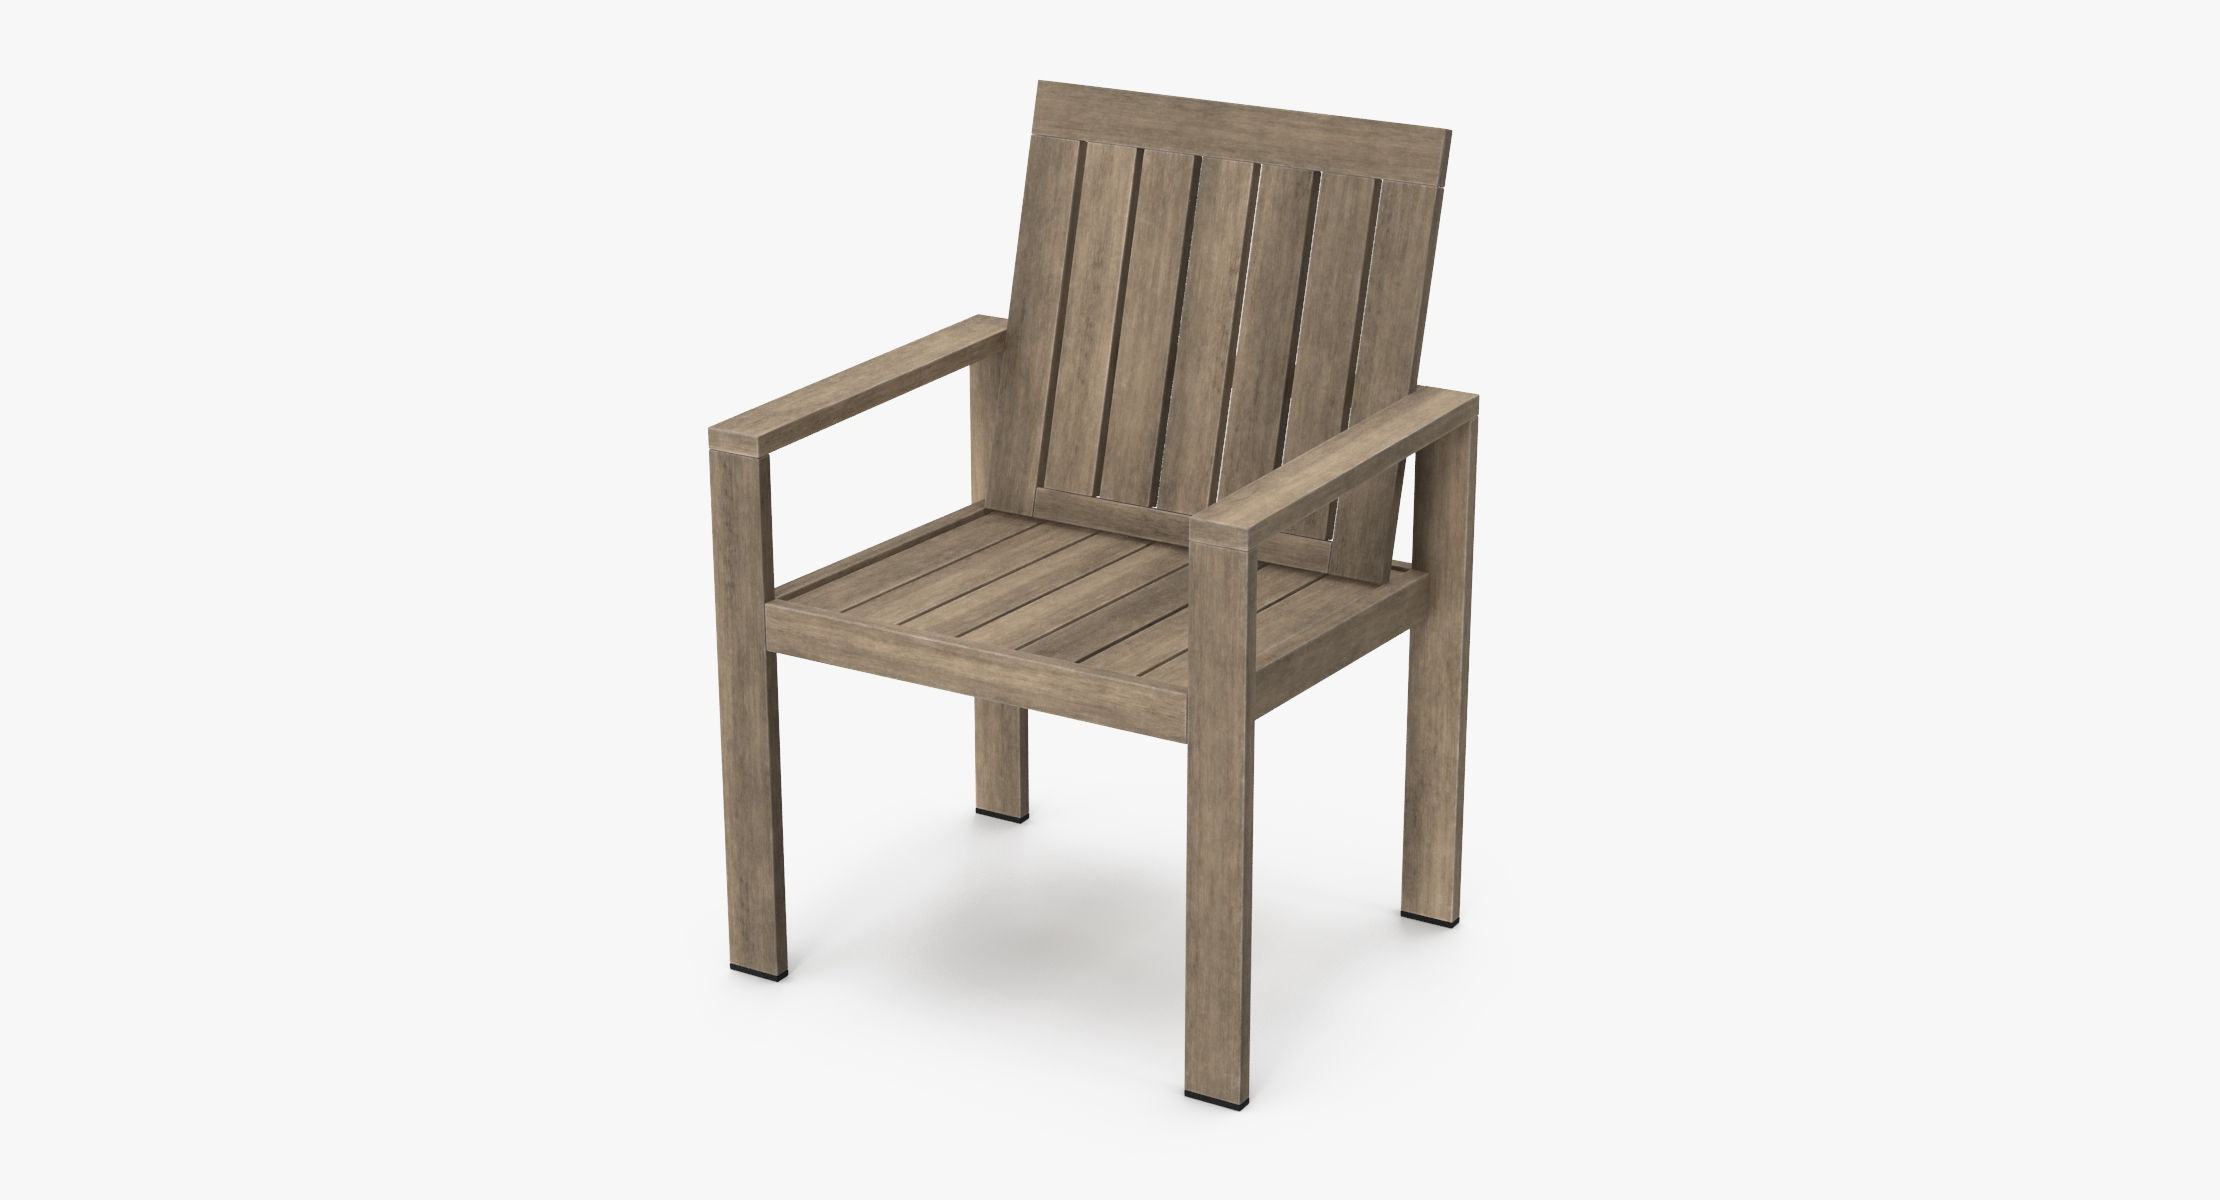 Patio Chair 04 - reel 1